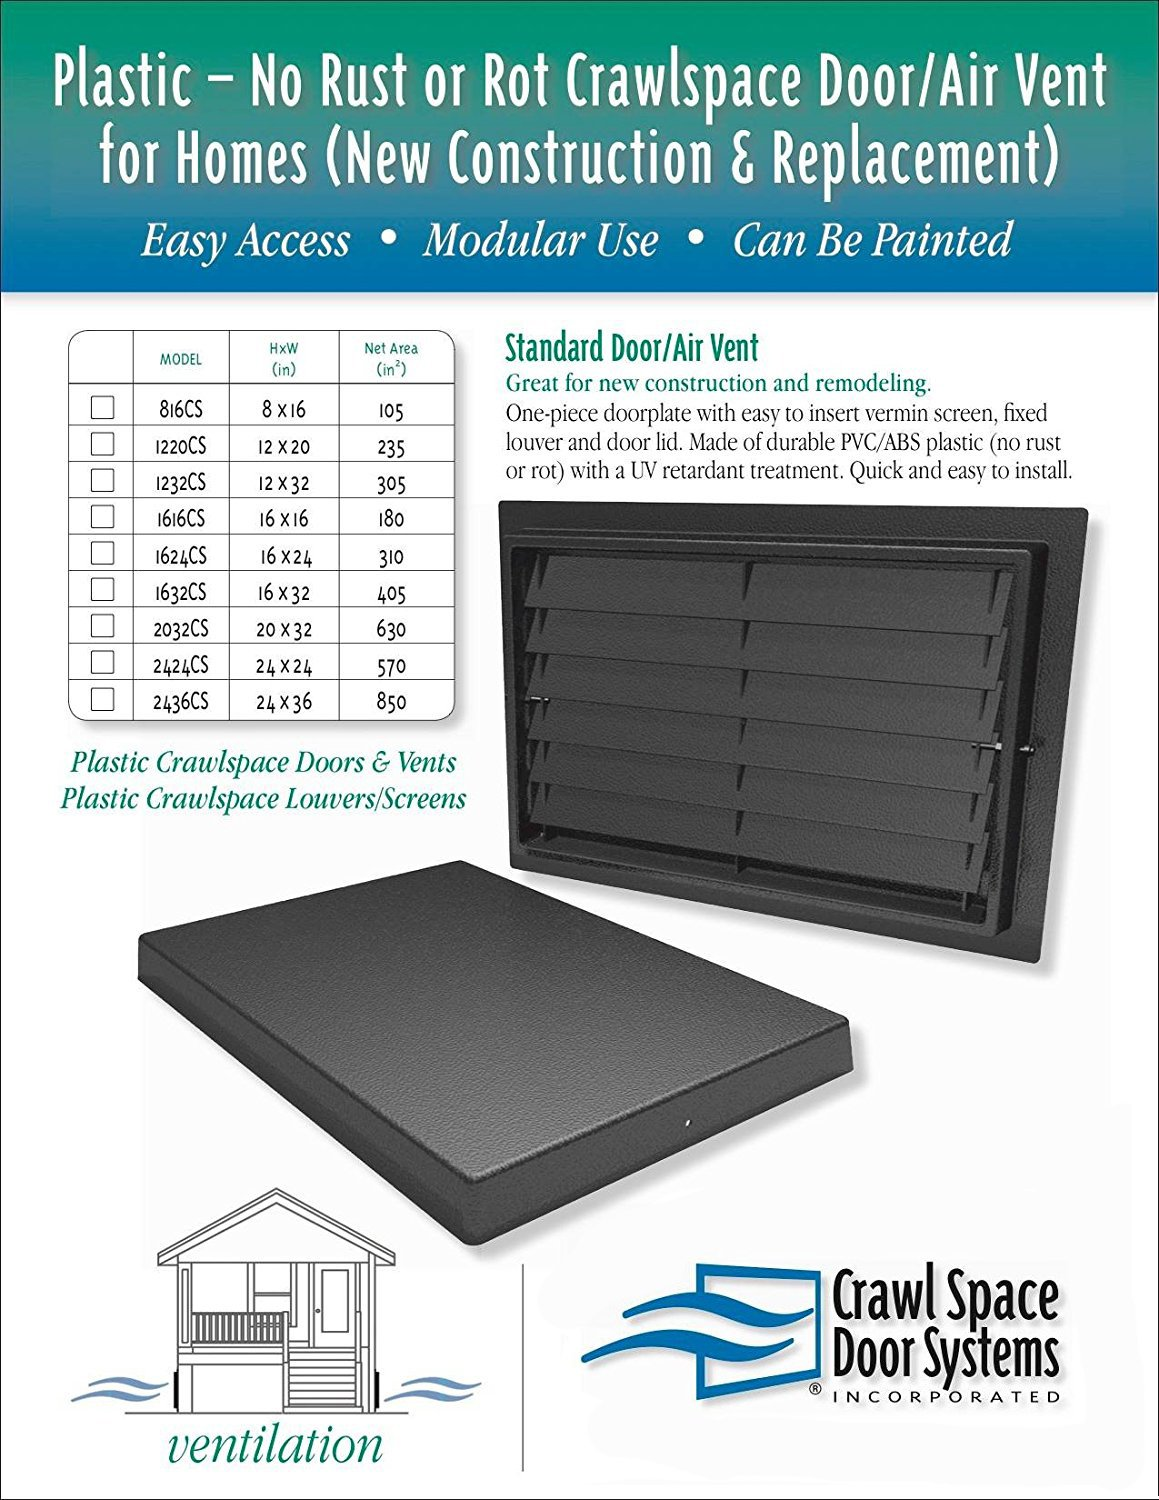 Crawl Space Vents Crawl Space Fans Home Depot 100